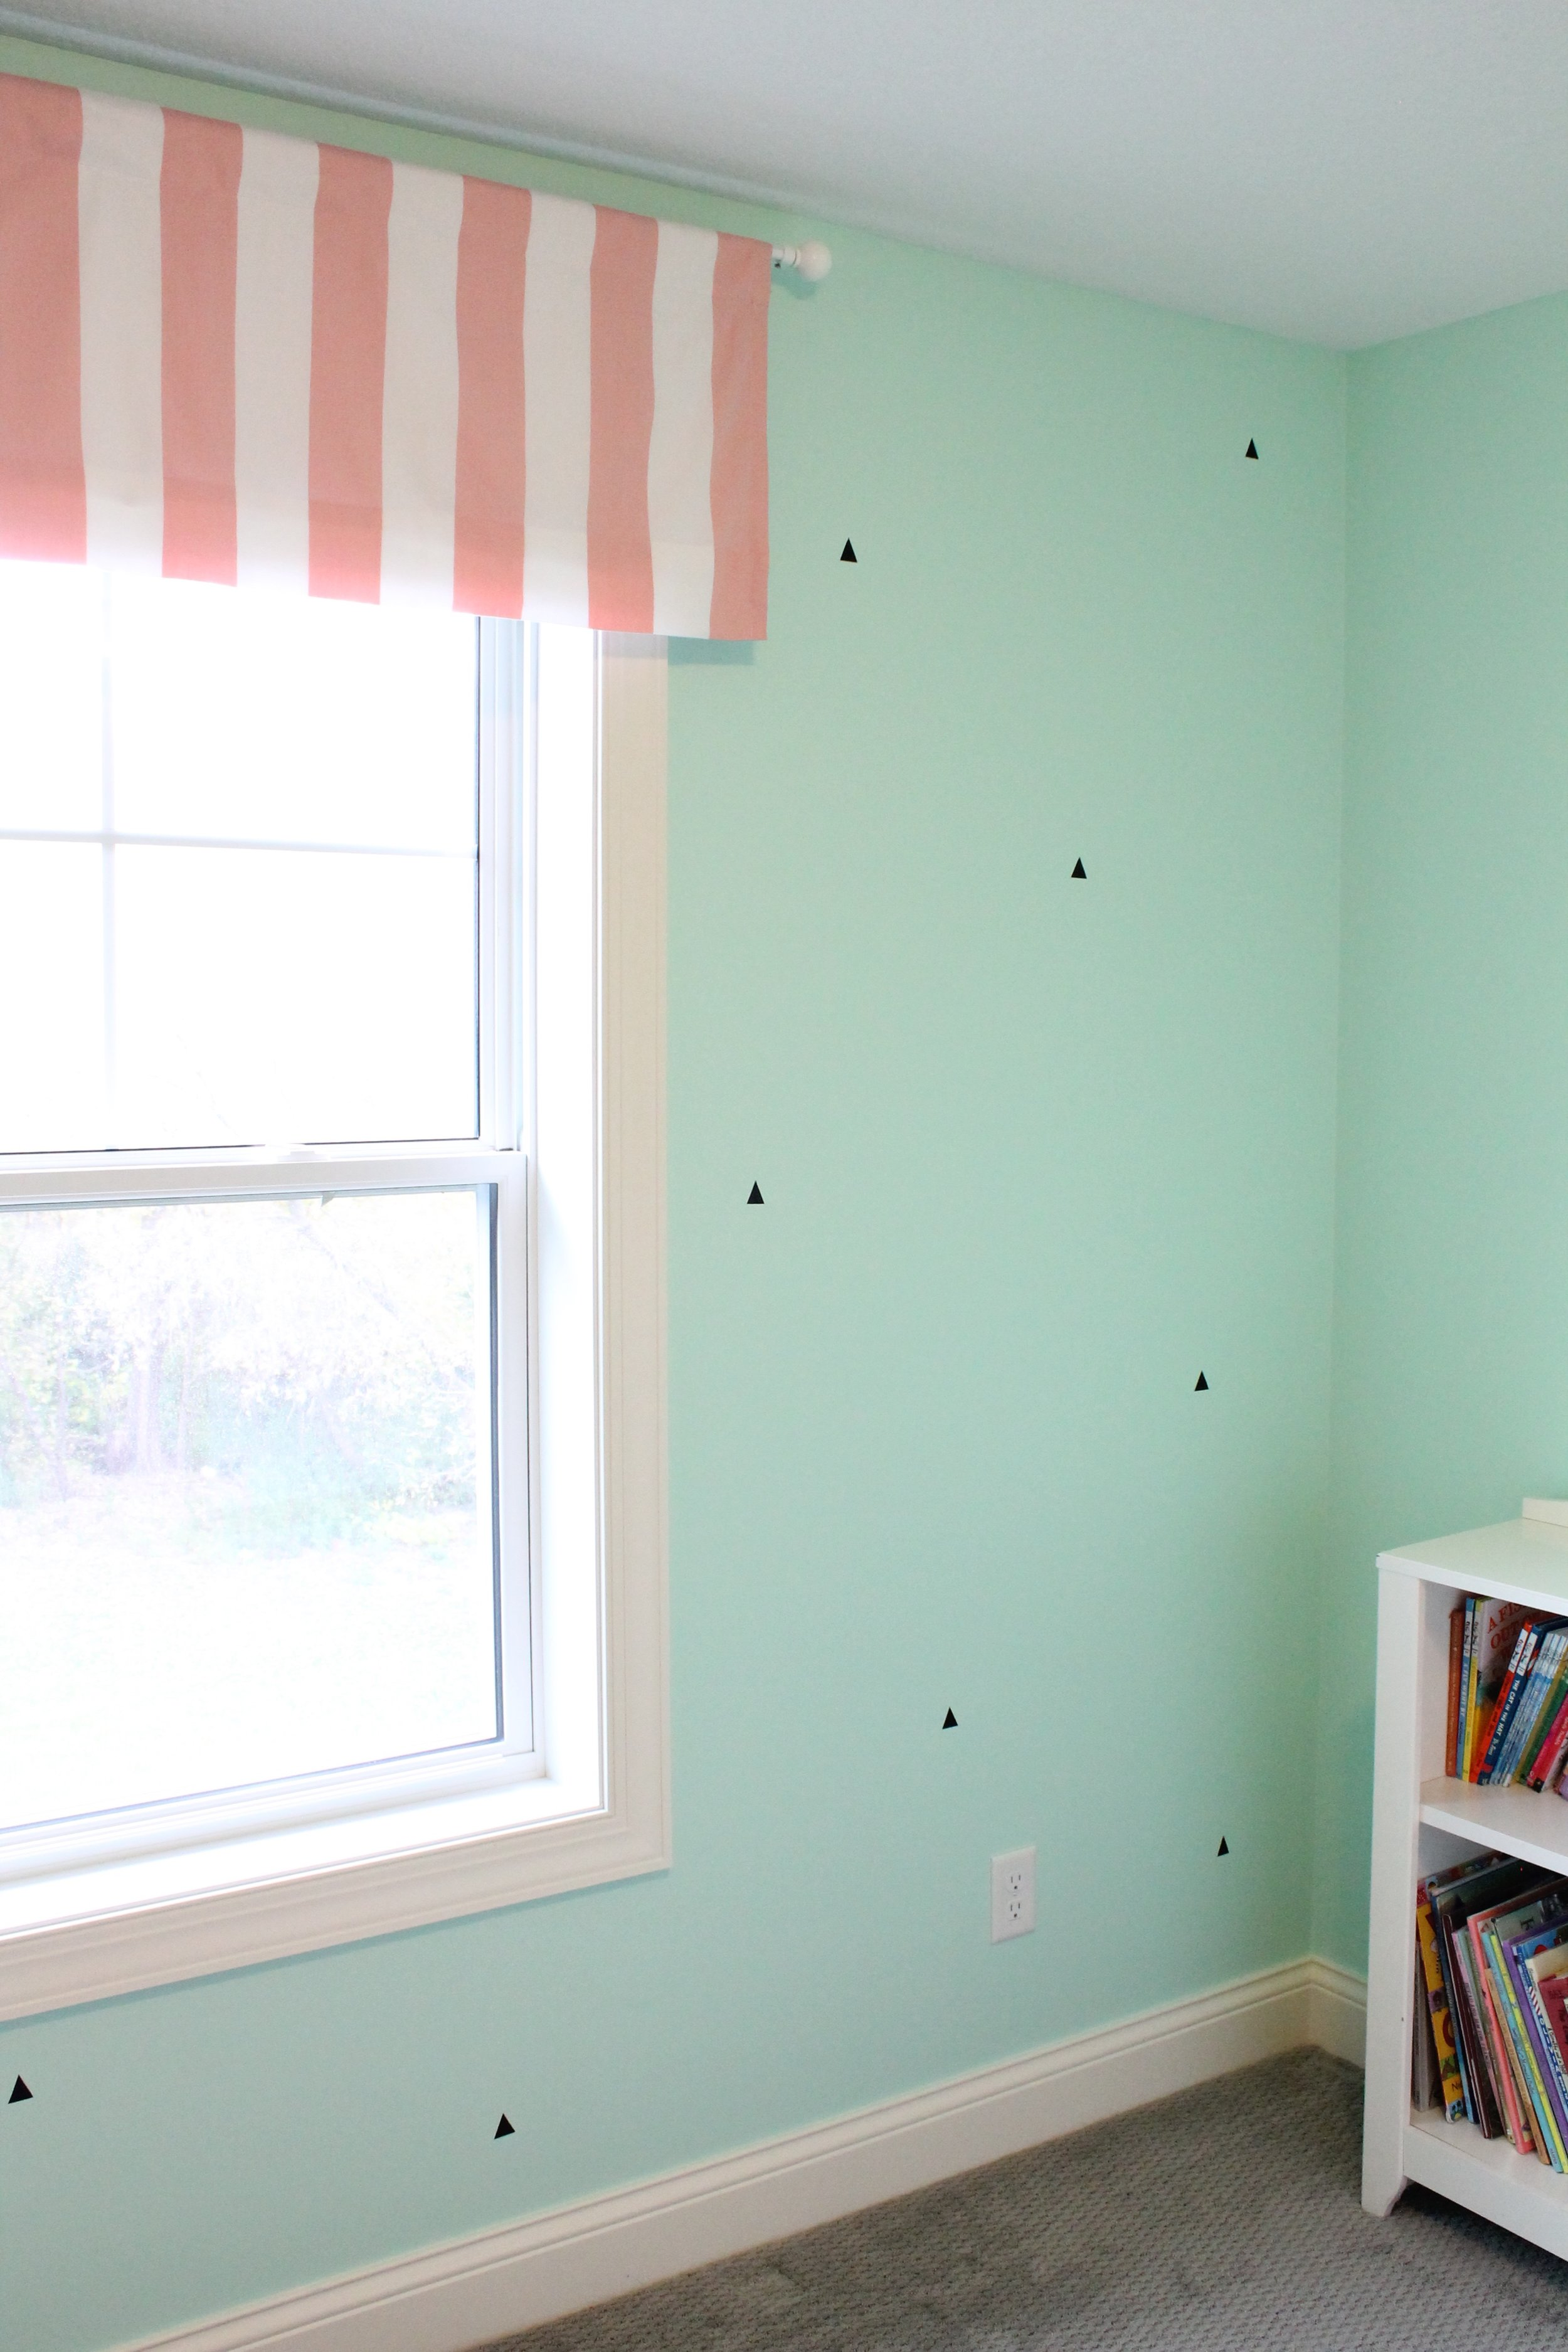 Ice cream inspired bedroom with mint chocolate chip walls.